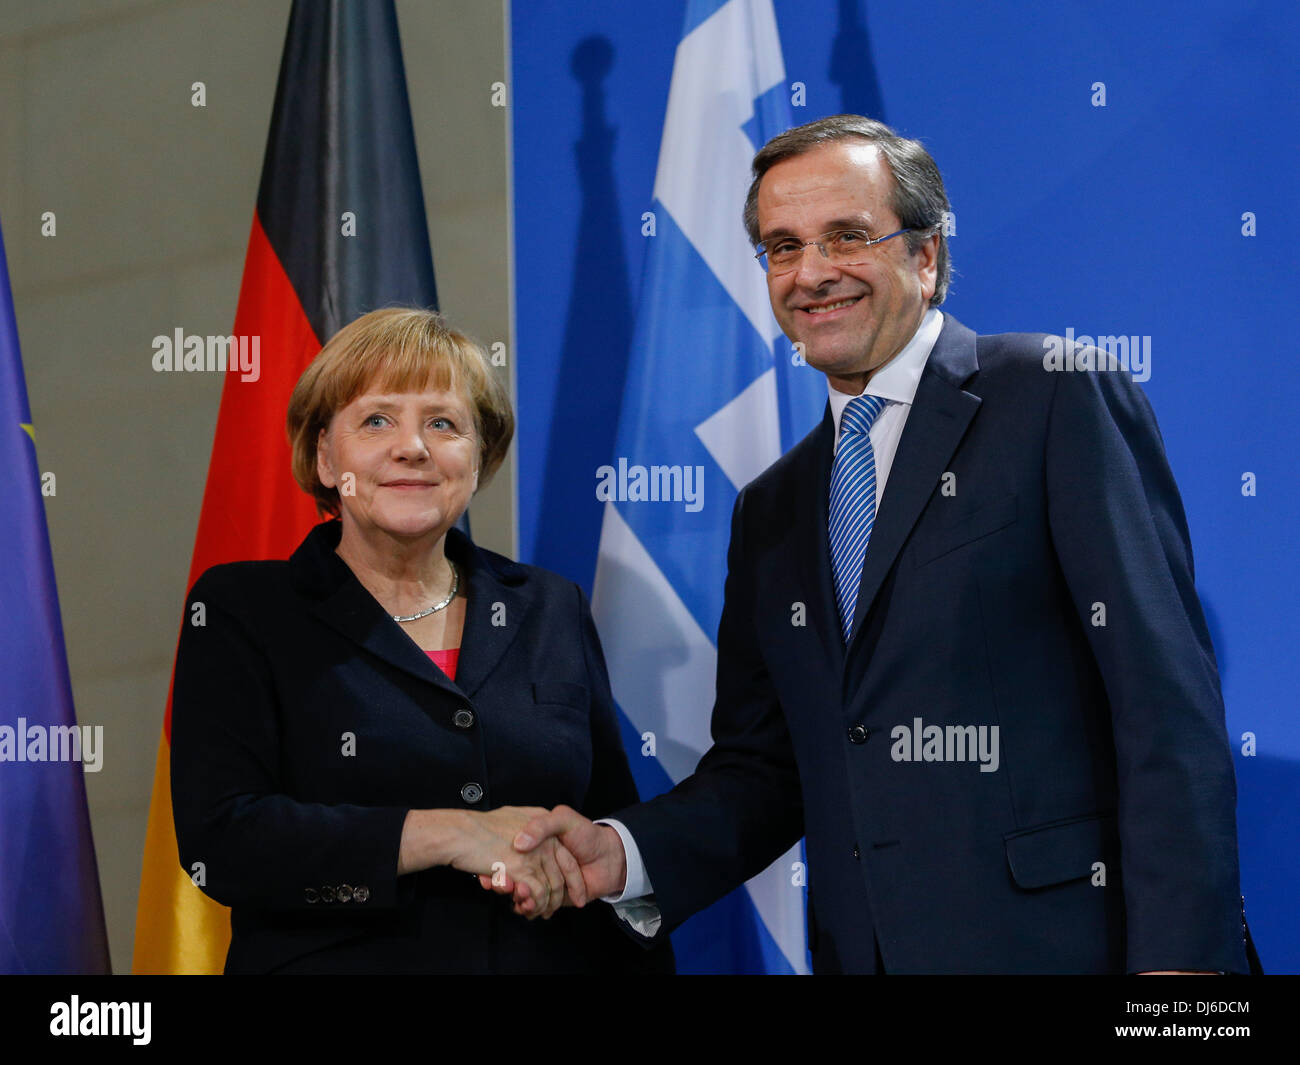 Berlin, Germany. 22nd Nov, 2013. Angela Merkel, German Chancellor, receives Andonis Samaras, Greek prime minister, at the Chancellery in Berlin. / Picture: Angela Merkel, German Chancellor, and Andonis Samaras, Greek prime minister, during joint press conference at the Chancellery in Berlin, on November 22, 2013.Photo: Reynaldo Paganelli/NurPhoto Credit:  Reynaldo Paganelli/NurPhoto/ZUMAPRESS.com/Alamy Live News - Stock Image